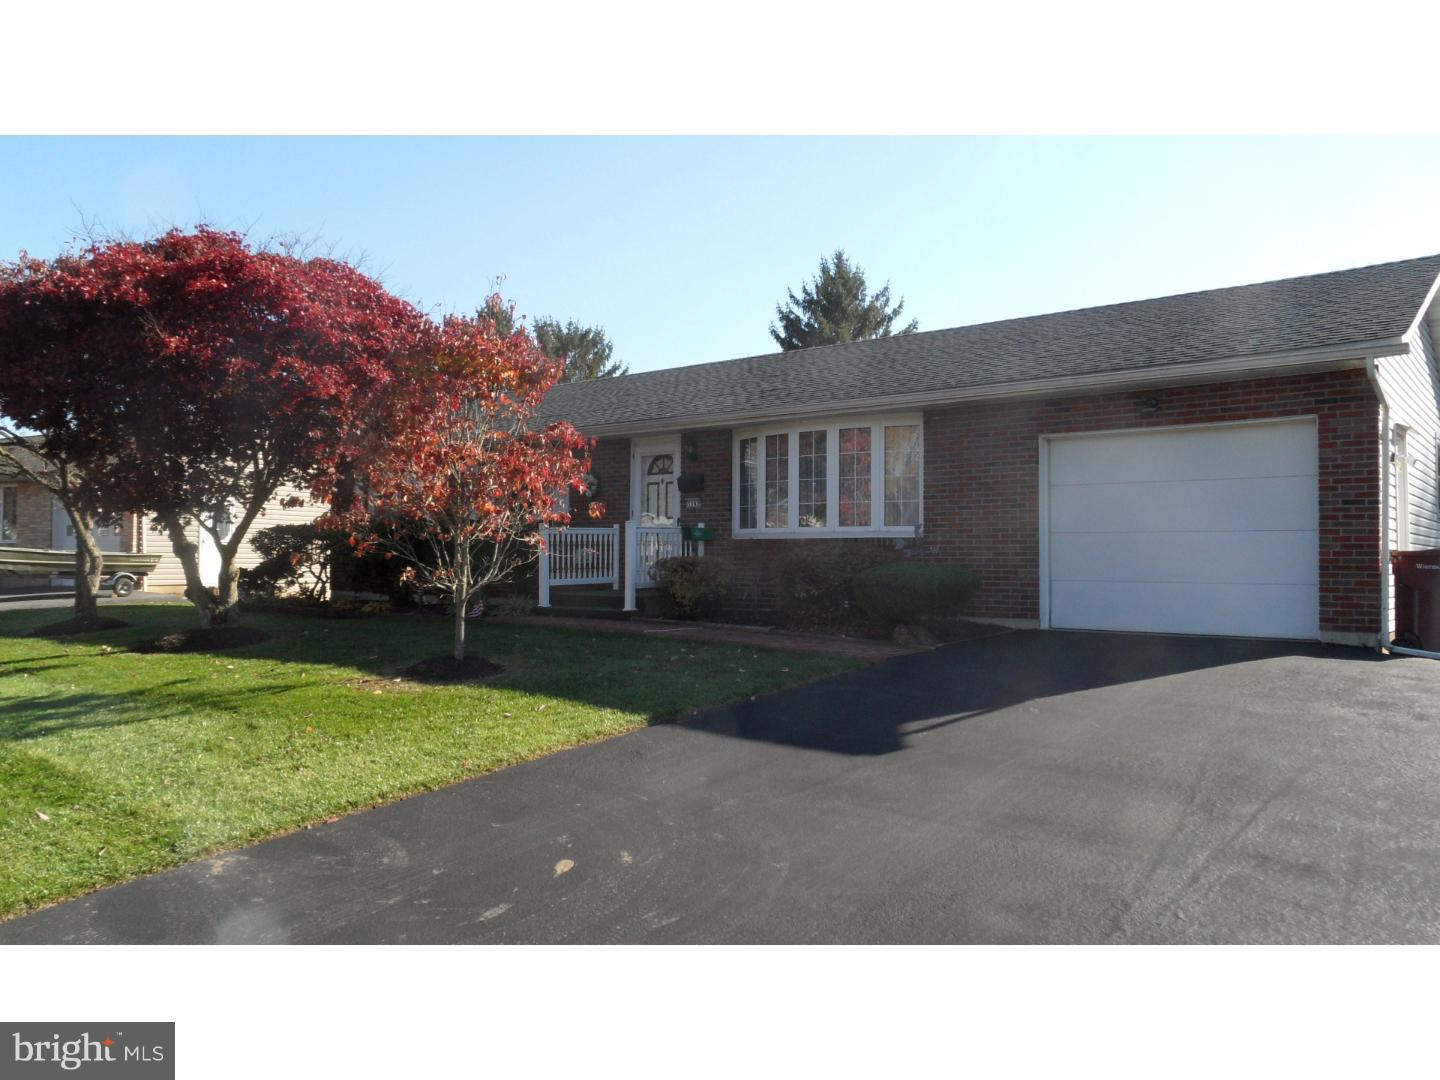 3392 BARKLAY ROAD, WHITEHALL, PA 18052